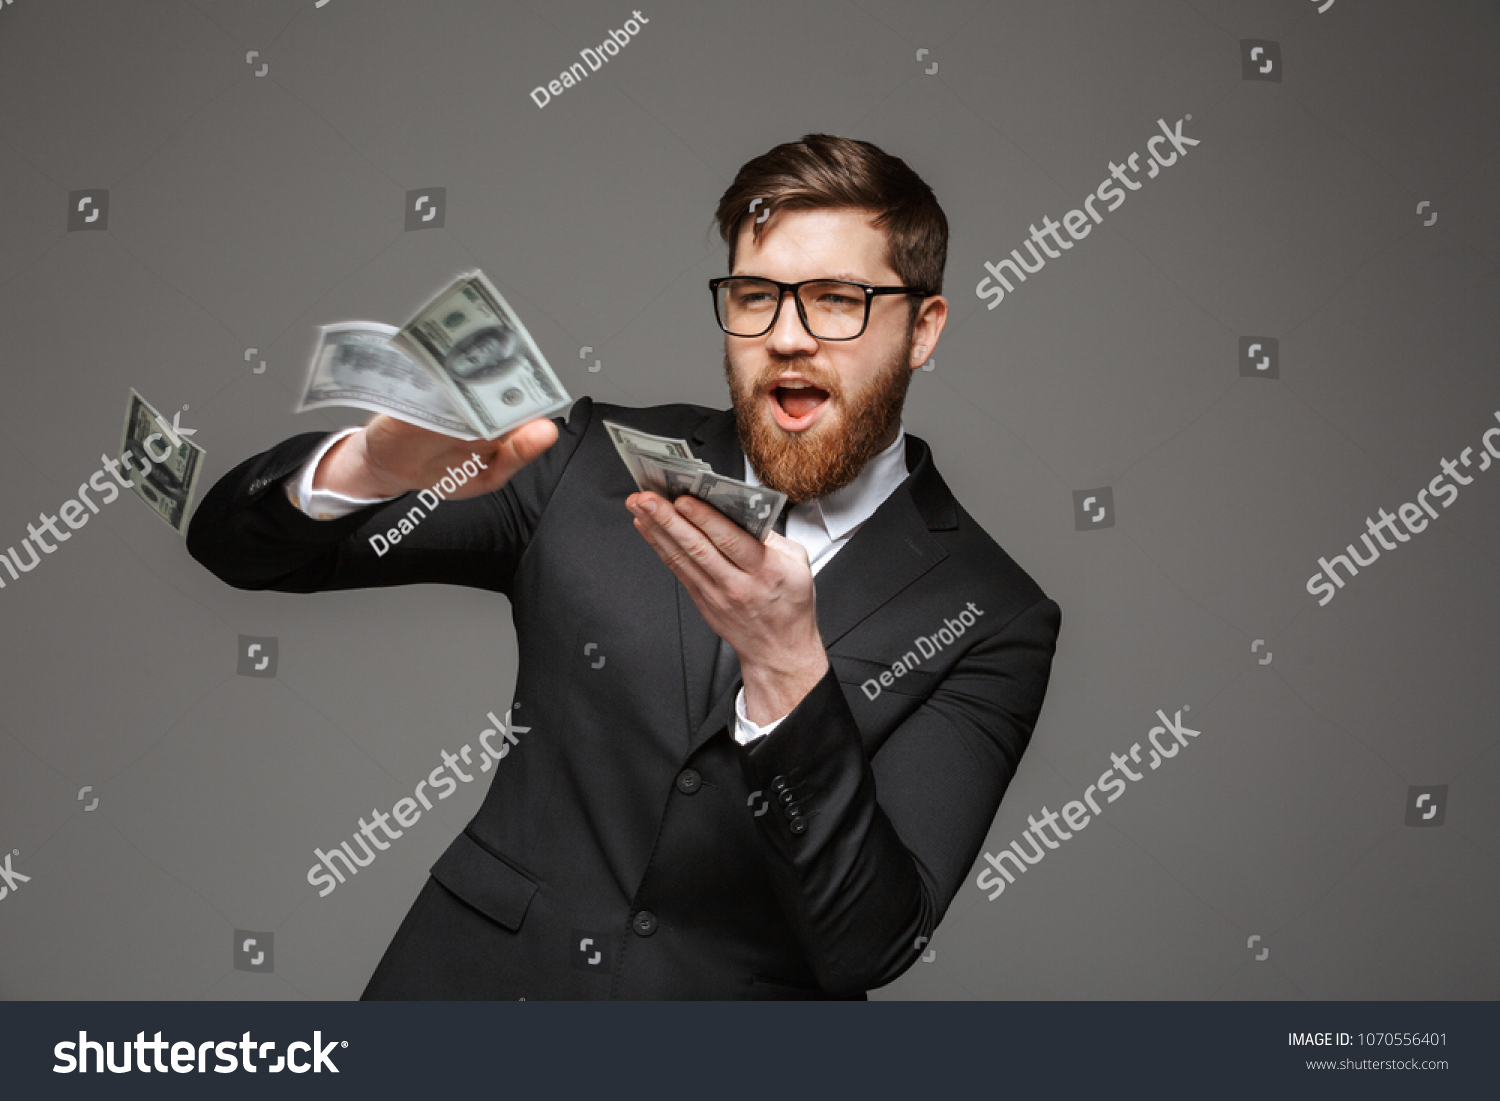 Portrait of a happy young businessman throwing out money banknotes isolated over gray background #1070556401